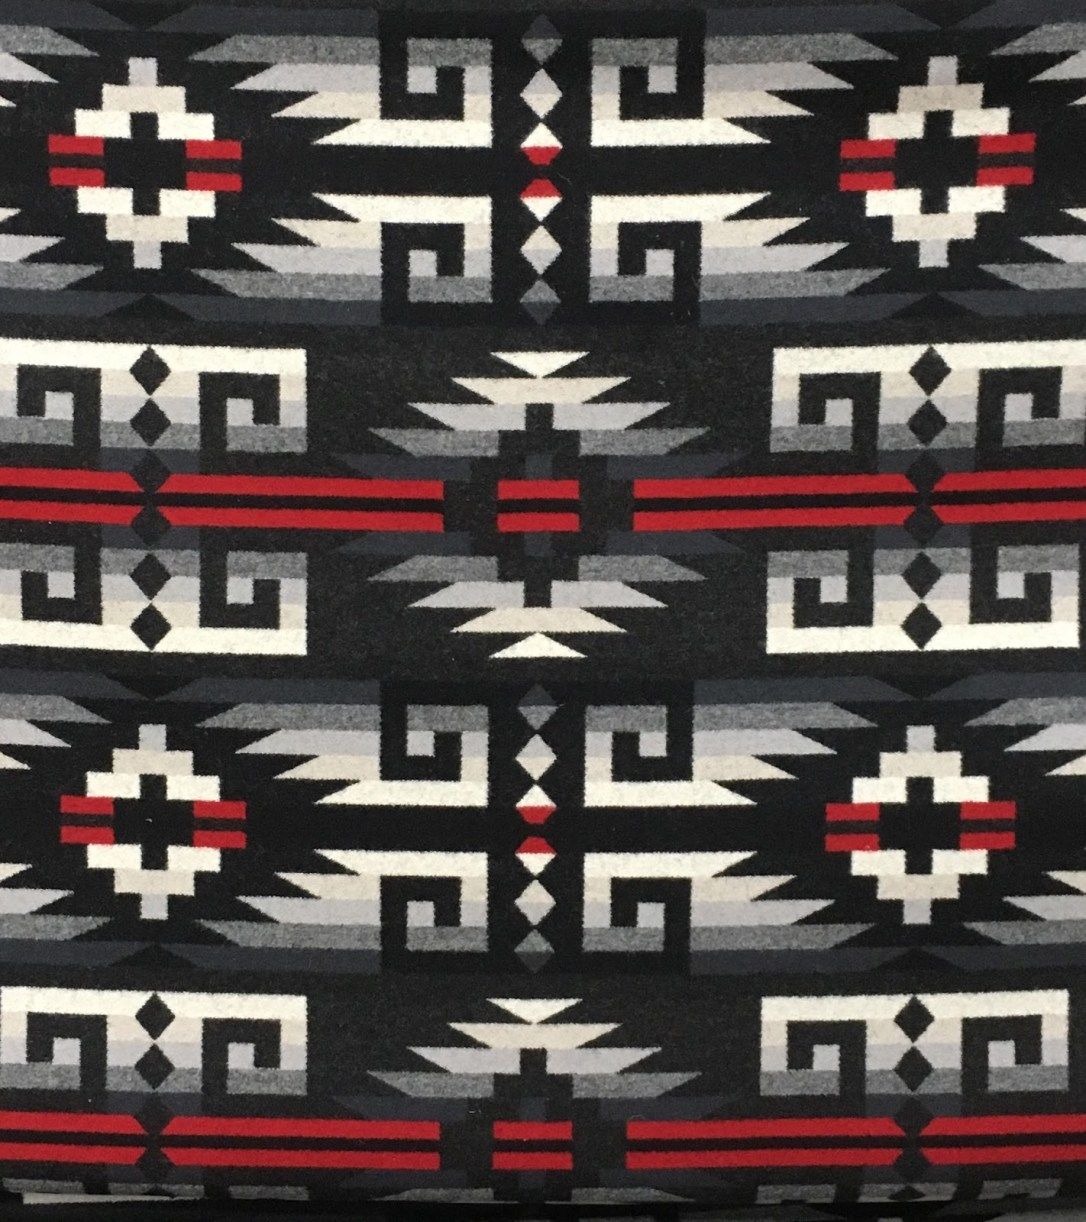 swatch of Pendleton wool fabric in Rio Rancho Black, a black, red and cream colored fabric with geometric shapes.